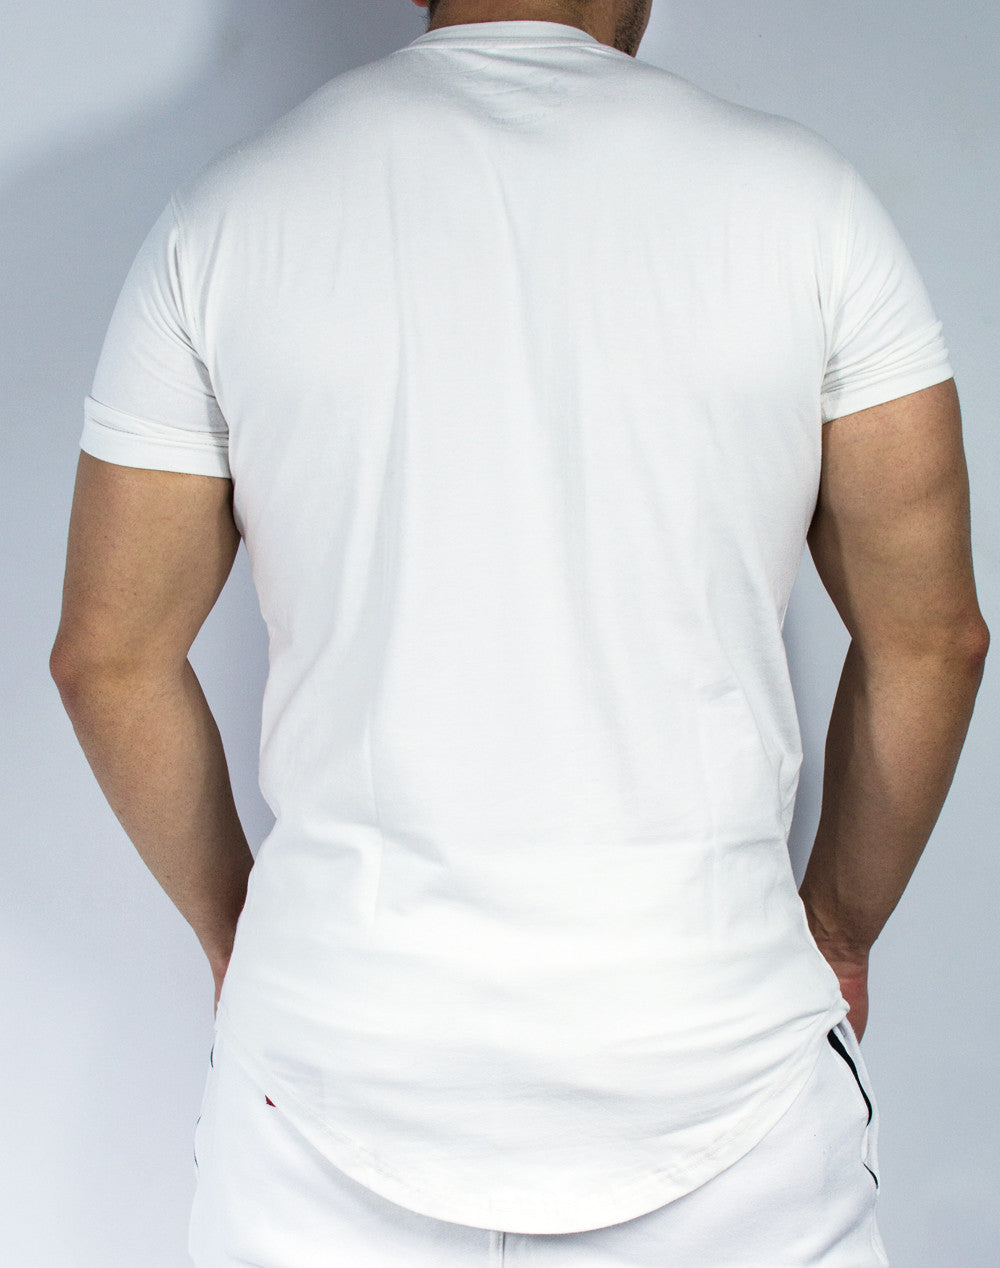 Scal Casual Tee - White - Scal Clothing